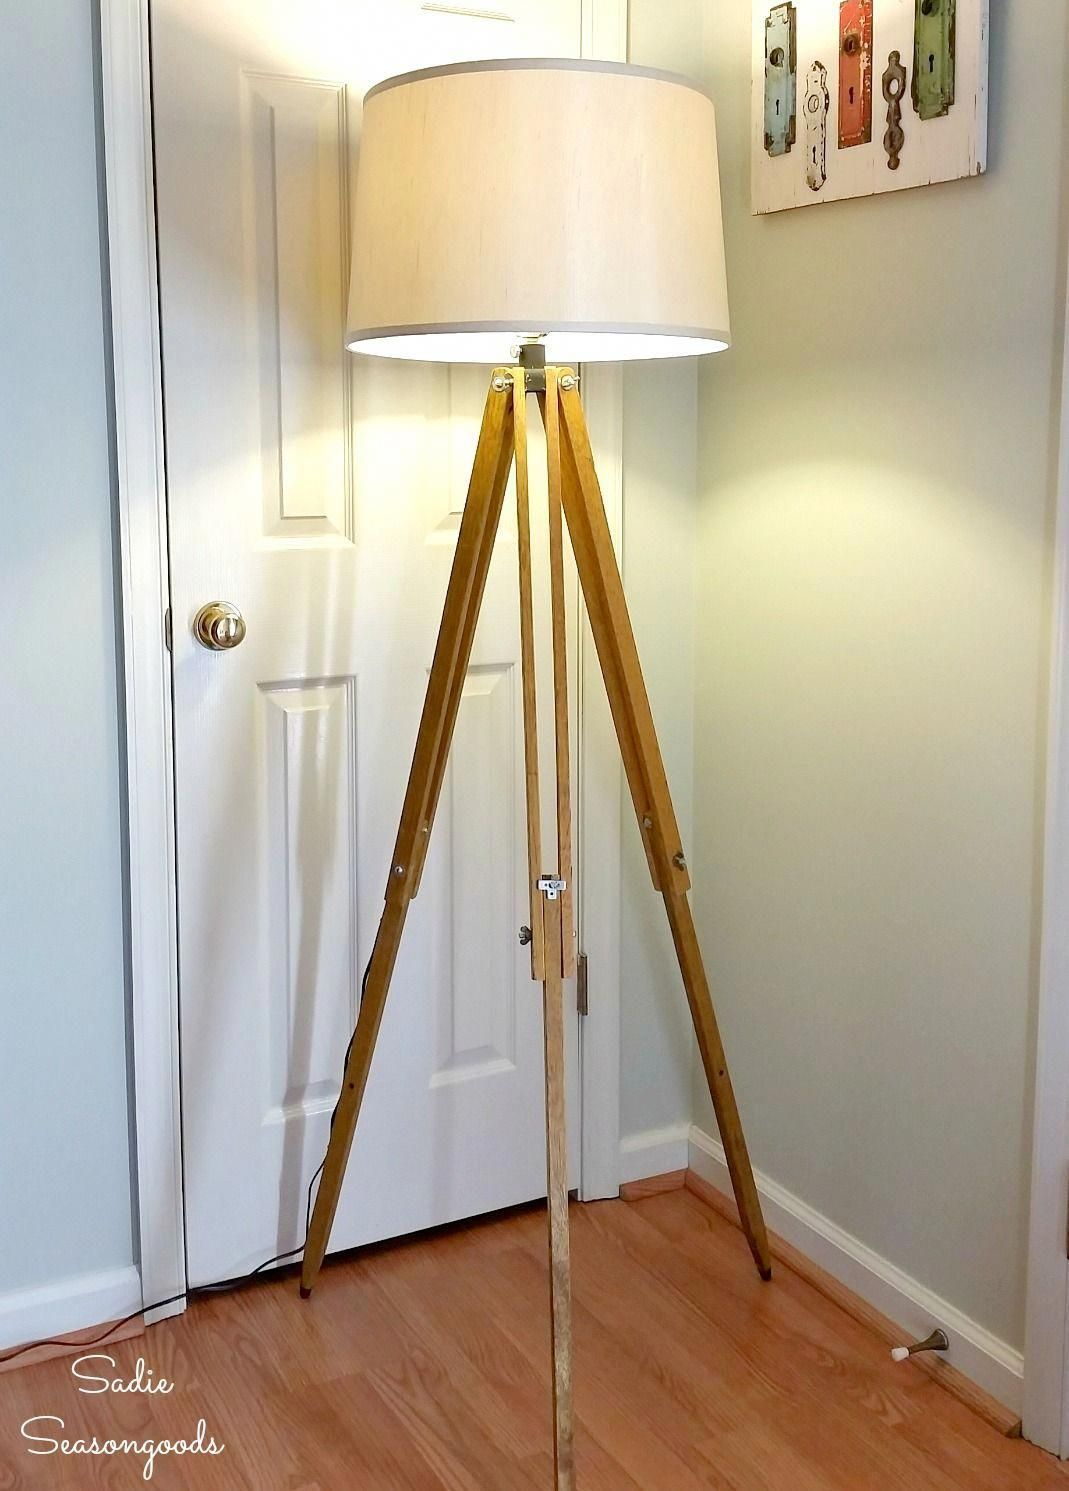 Teleskop Stativ Lampe Create An Industrial Floor Lamp For A Fraction Of The Cost From